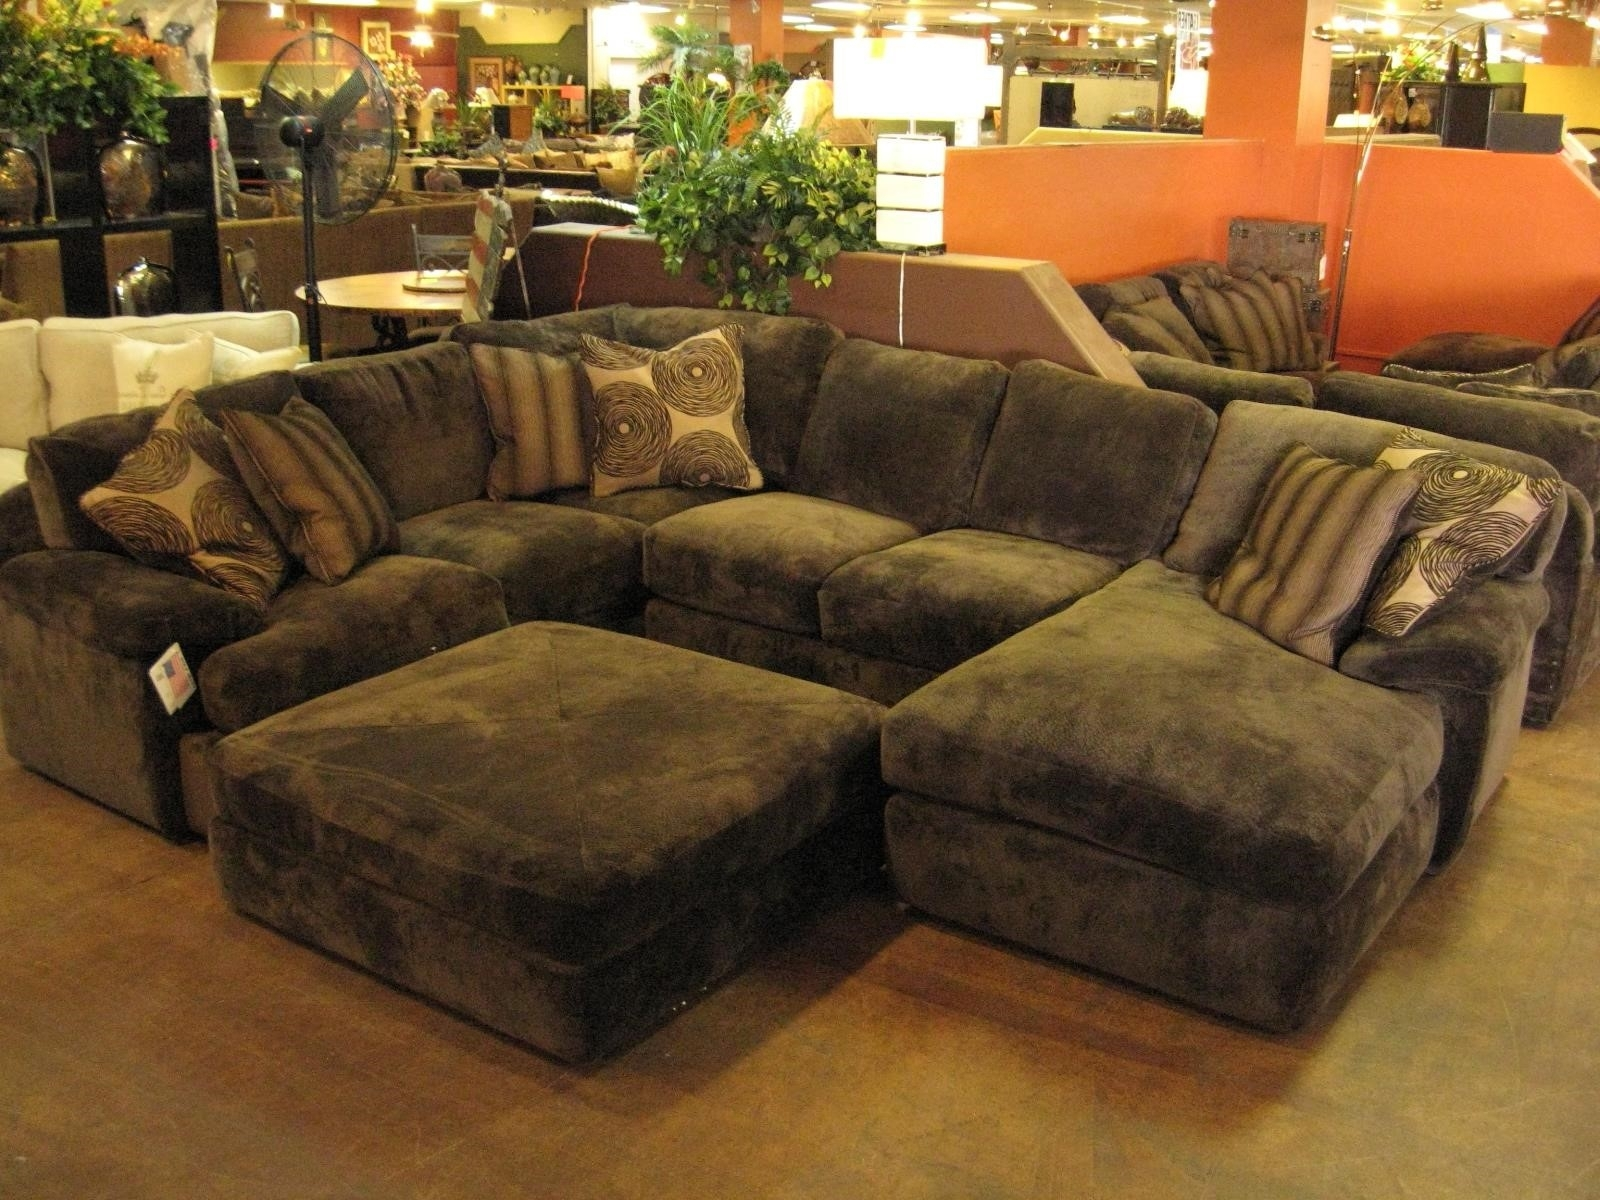 Large Sectional Sofa With Ottoman - Visionexchange.co regarding Sectional Sofas With Oversized Ottoman (Image 8 of 15)